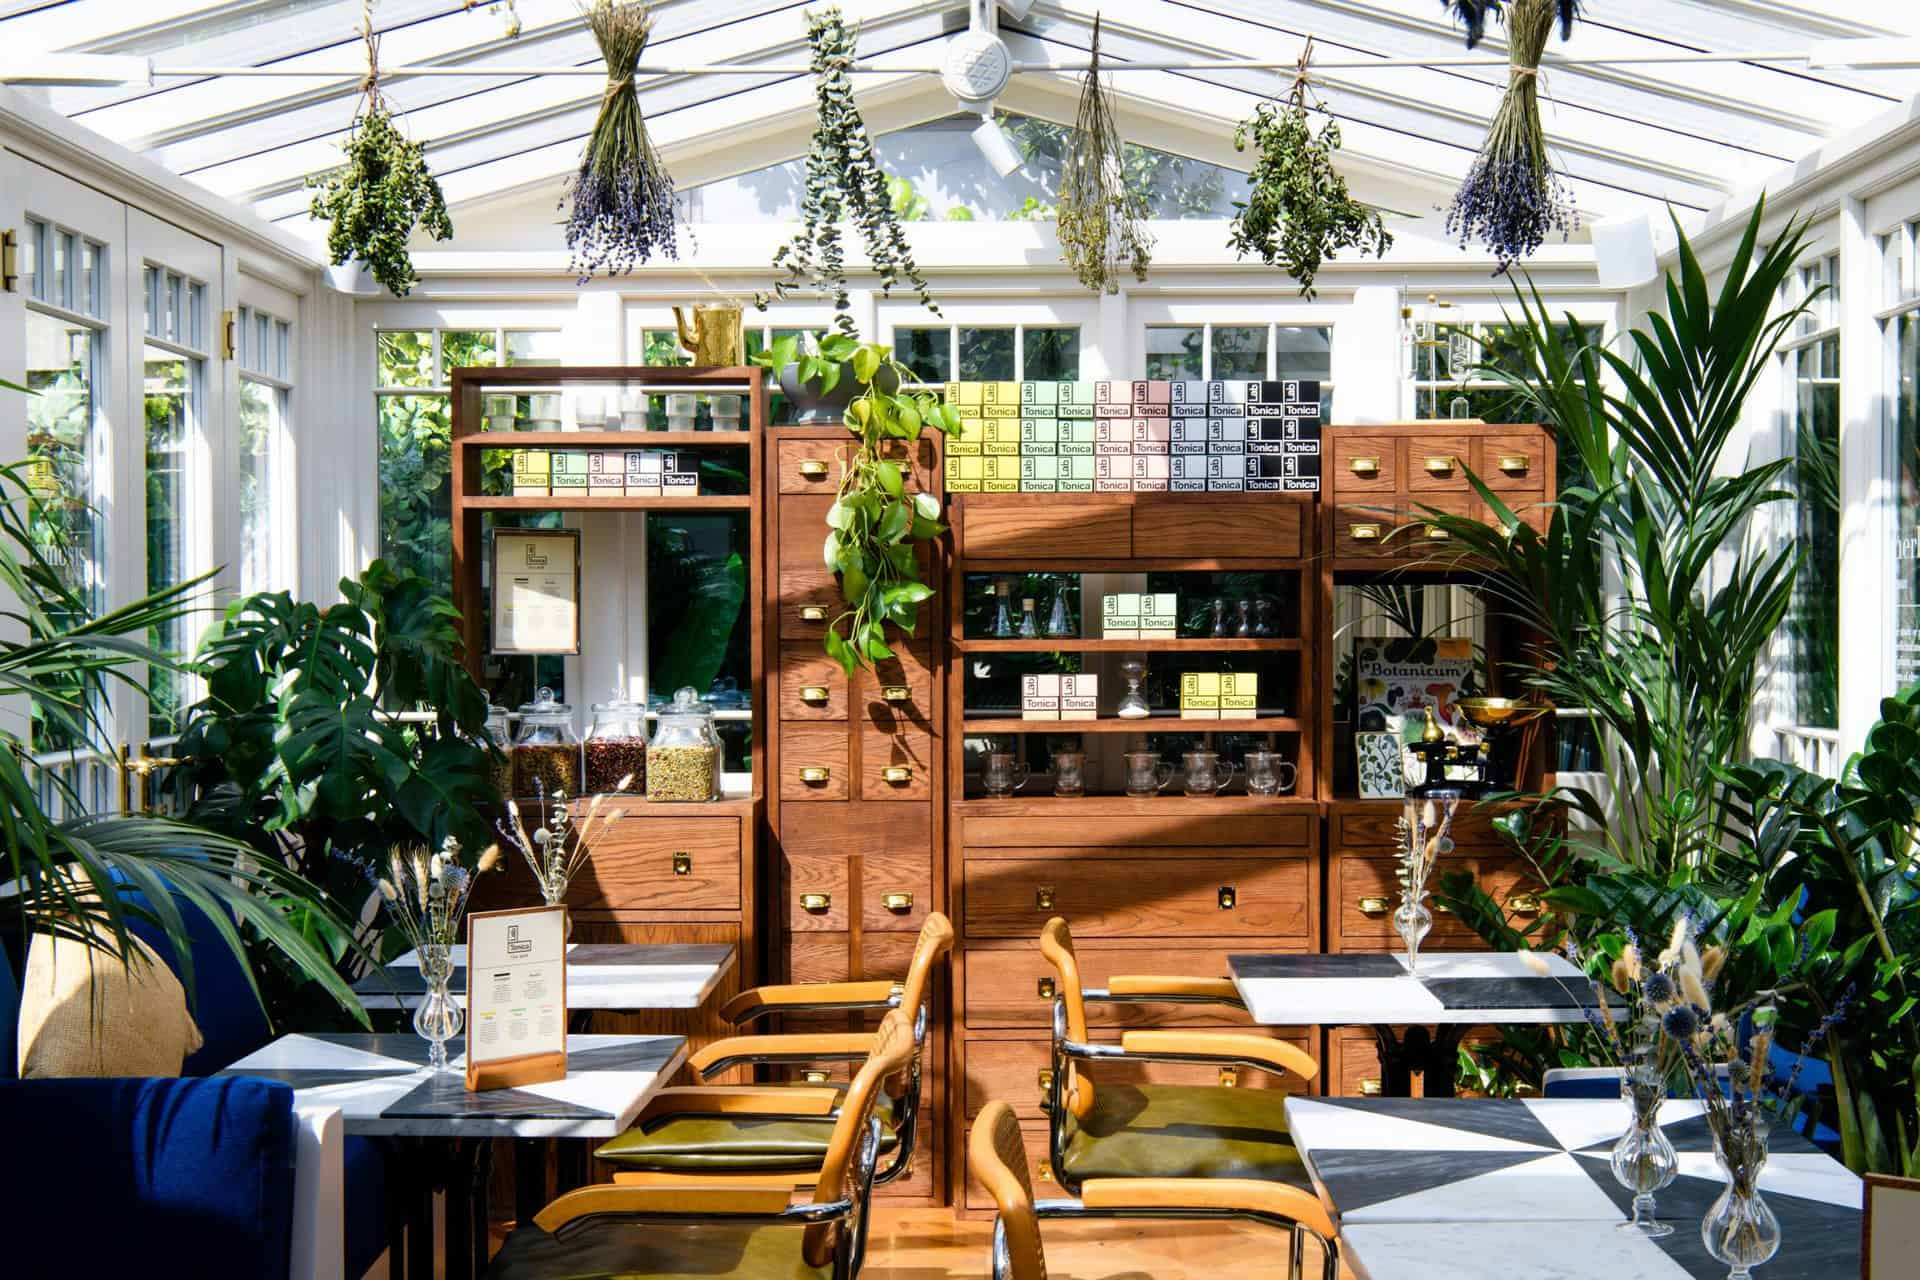 Apothecary style tea room in a glass conservatory with herbs hanging from the ceiling.